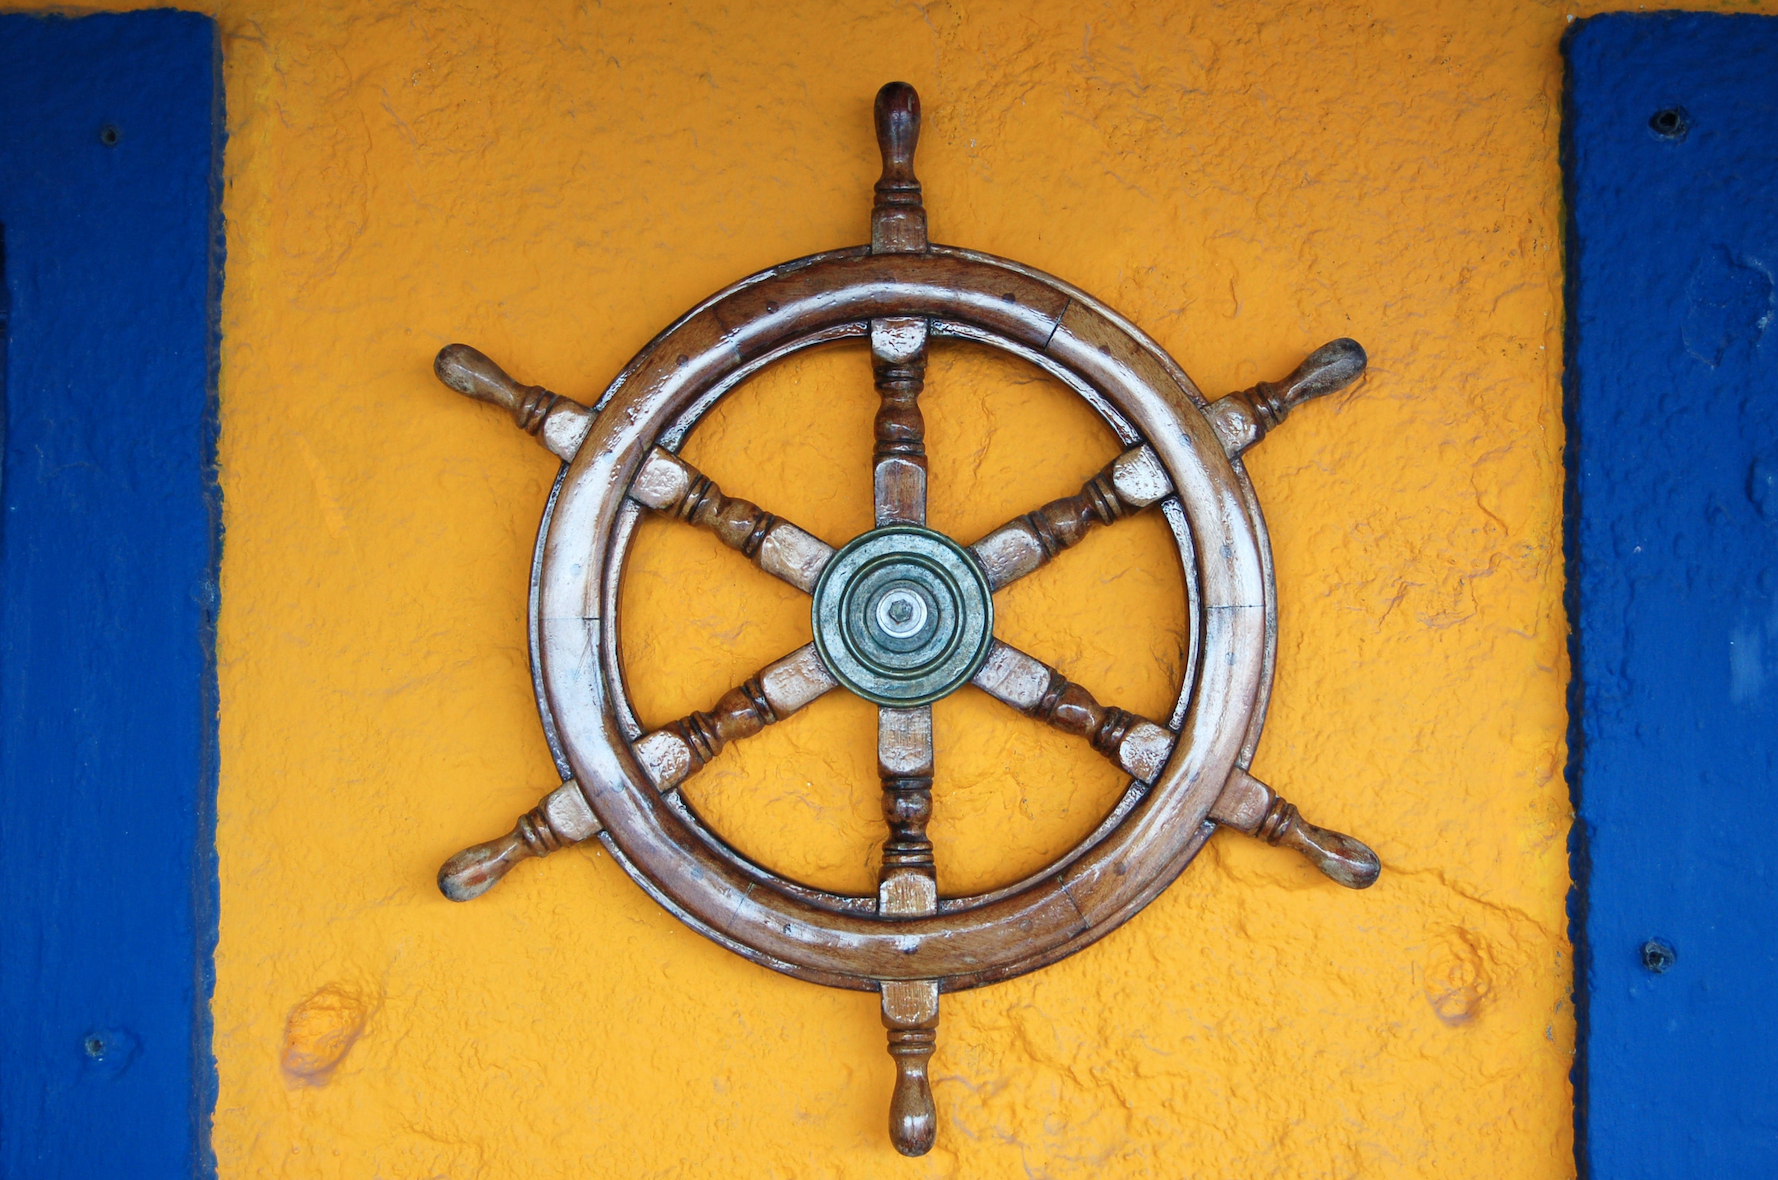 steering wheel on yellow and blue